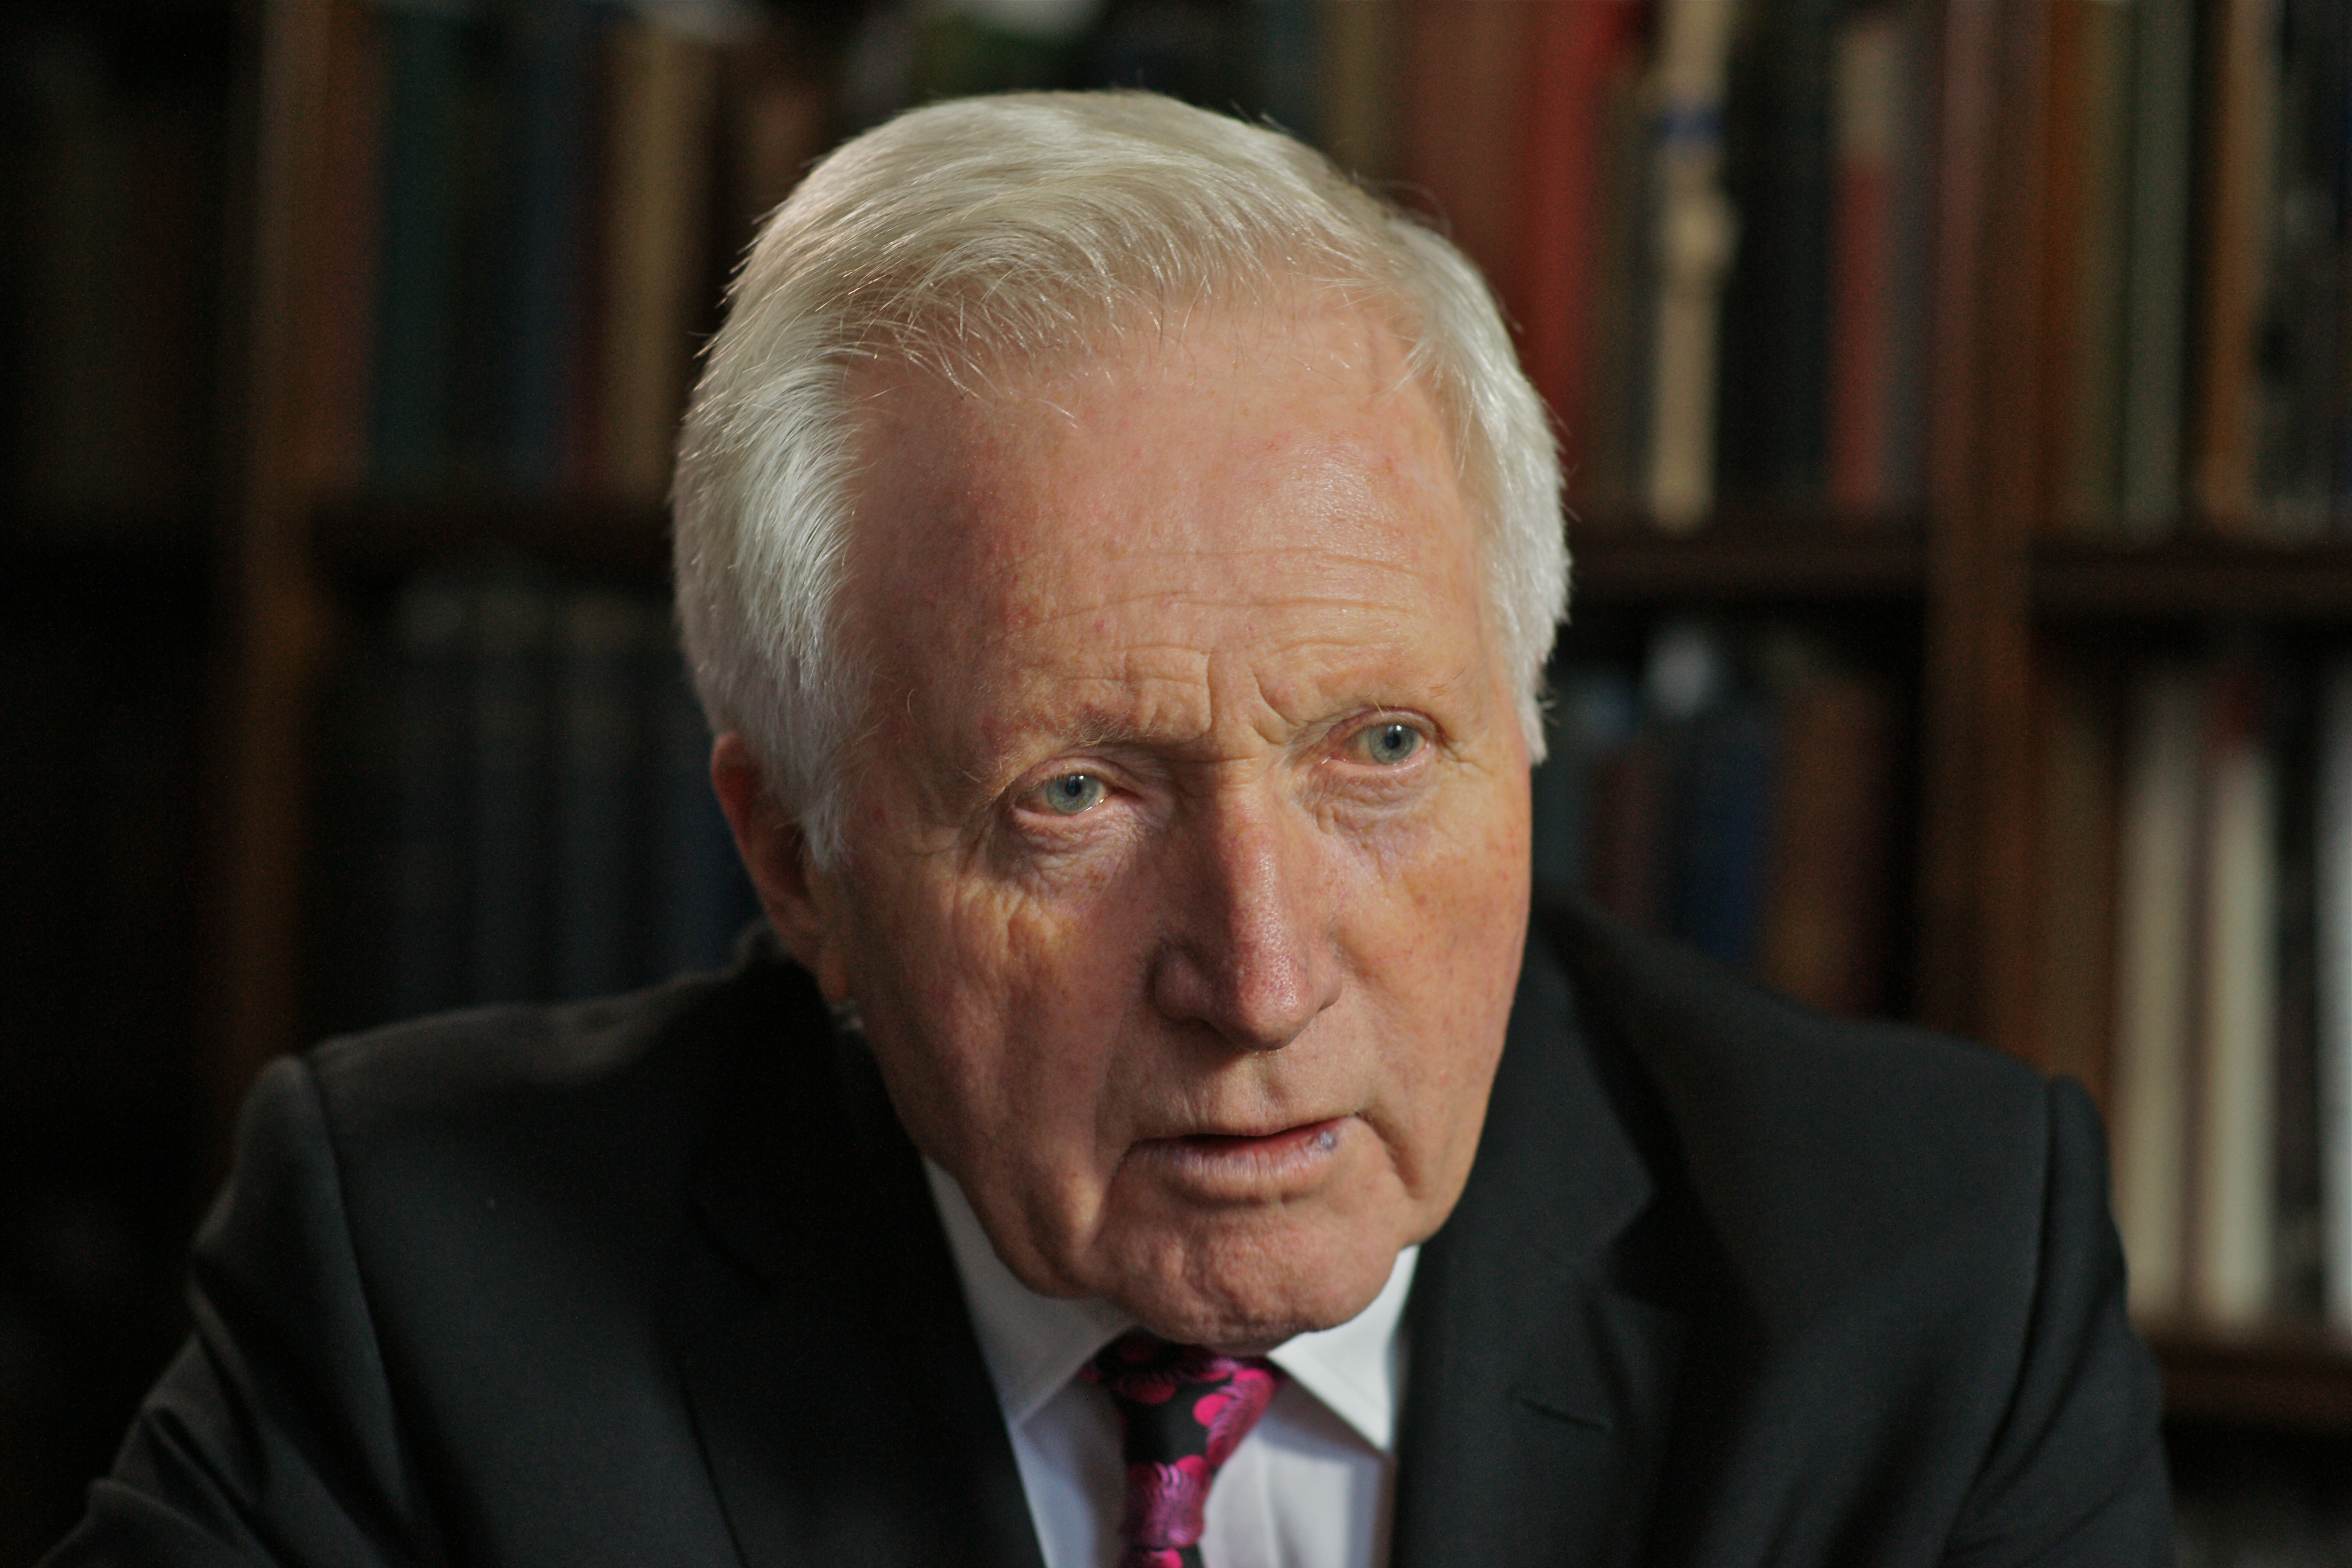 British journalist David Dimbleby appears on the Andre Singer documentary 'Night Will Fall', which researches the making of the German Concentration Camps Factual Survey, 2014.  (Photo by Richard Blanshard/Getty Images)